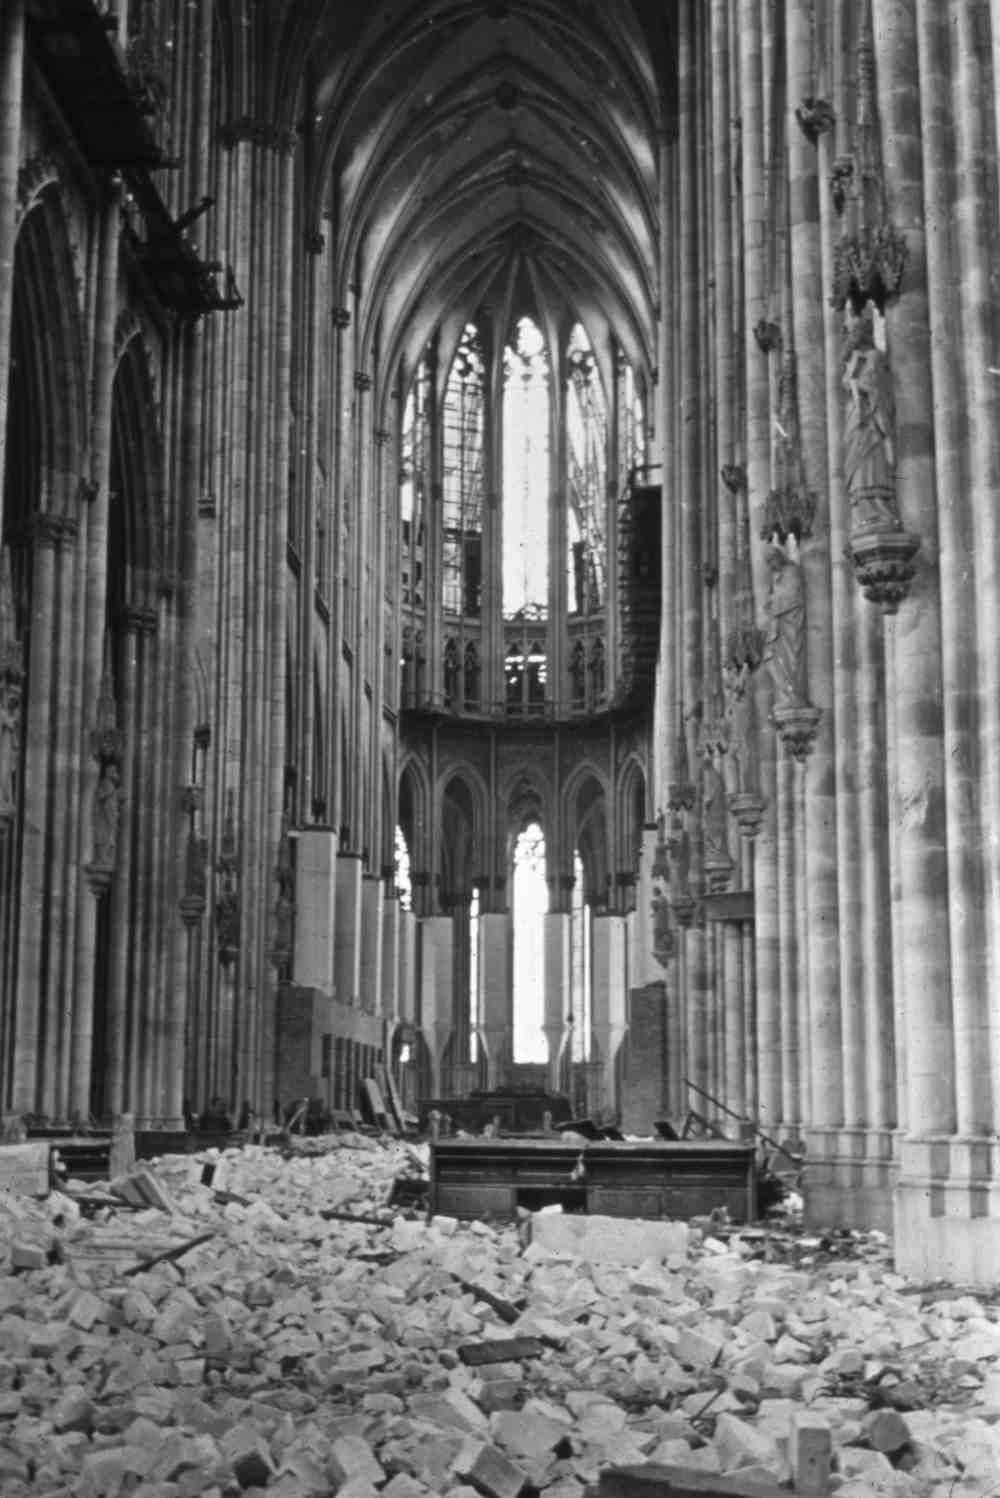 March 1945.  The rubble-strewn interior of the Dom Cathedral in Cologne, Germany.